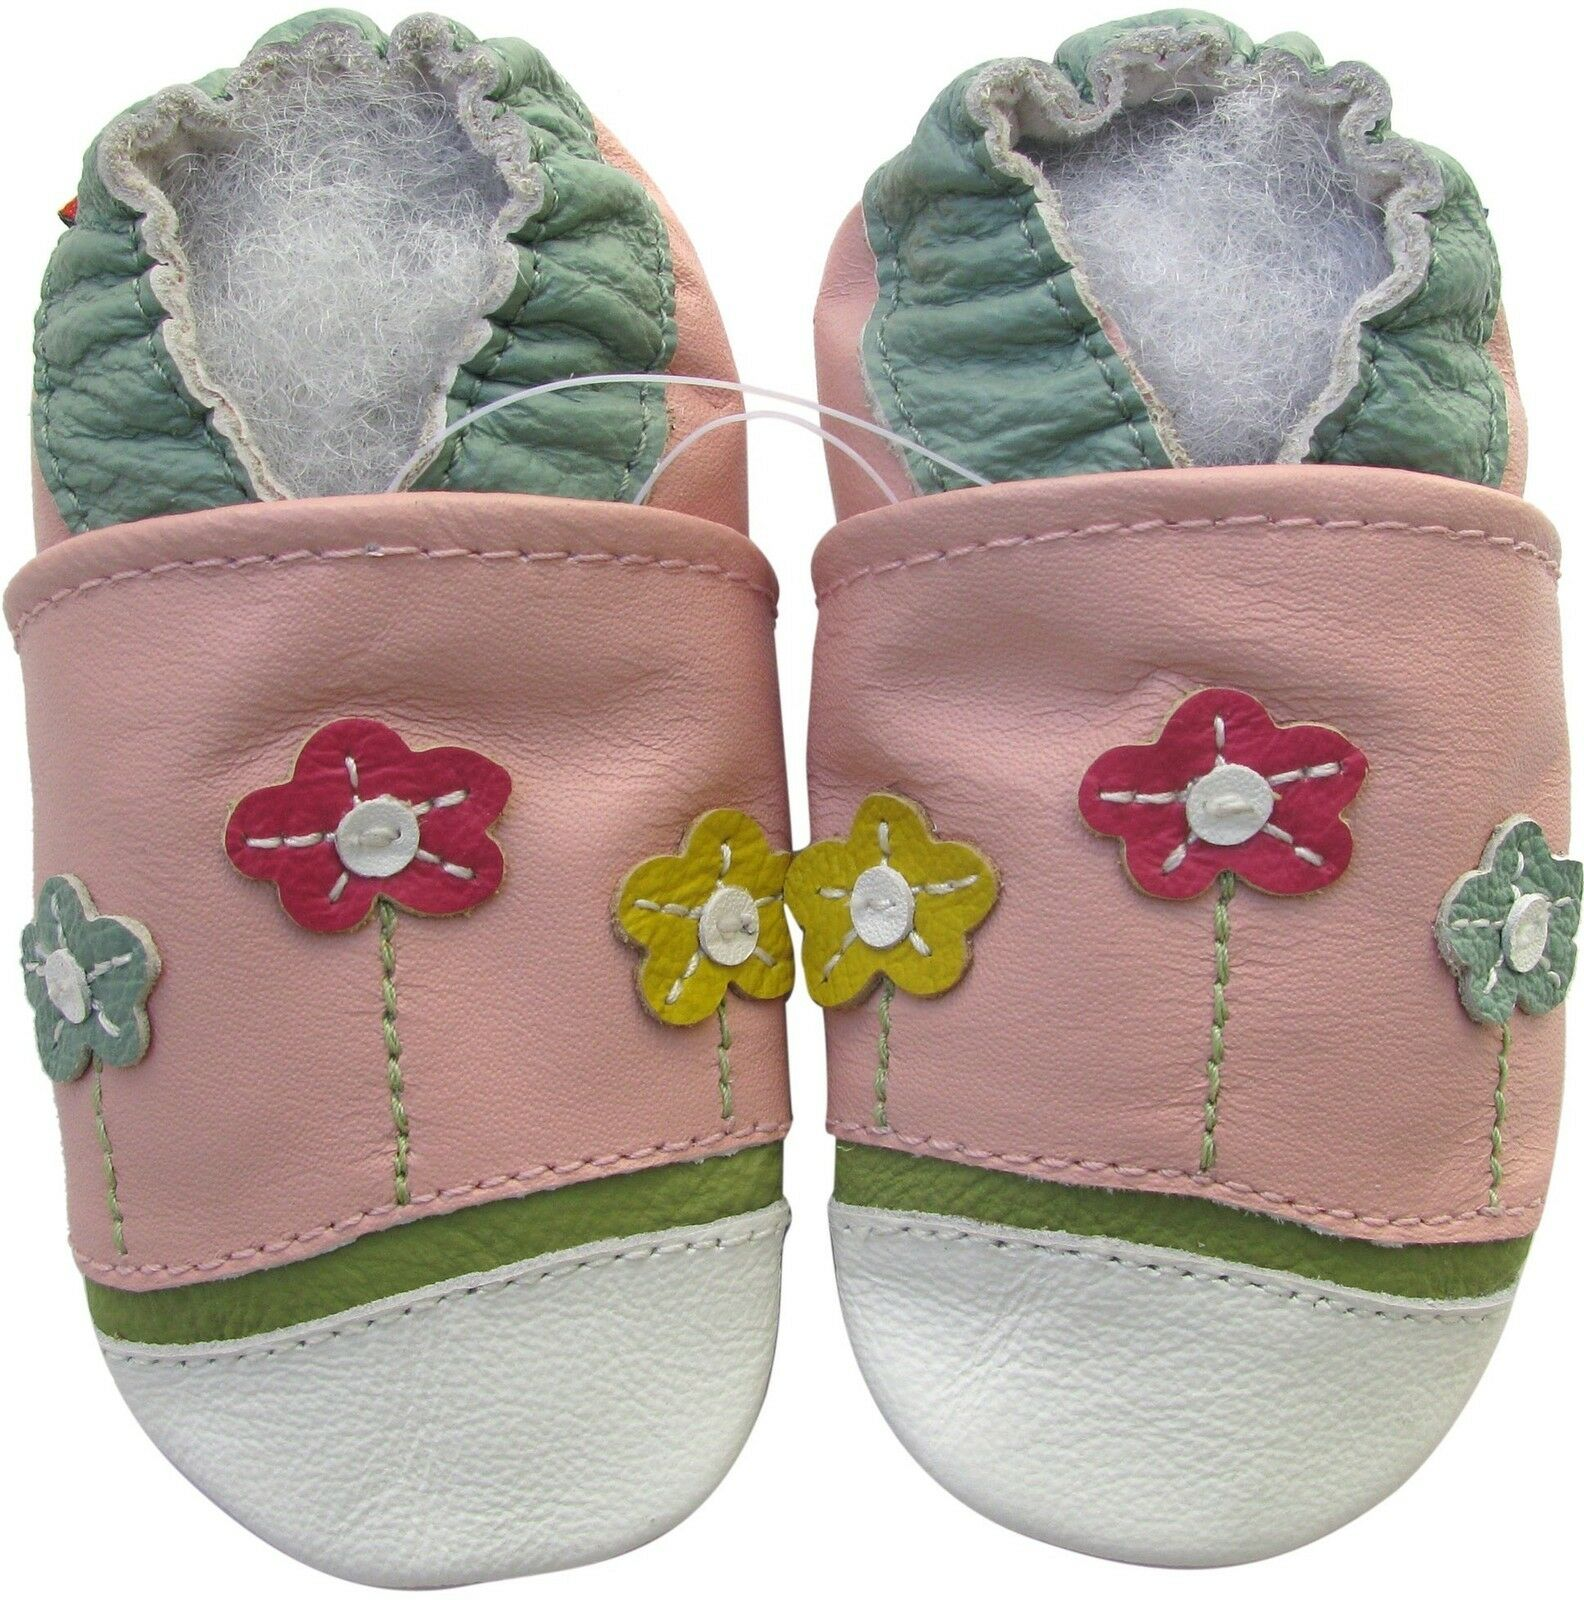 Carozoo Little Flower Pink 6 12m Soft Sole Leather Baby Shoes